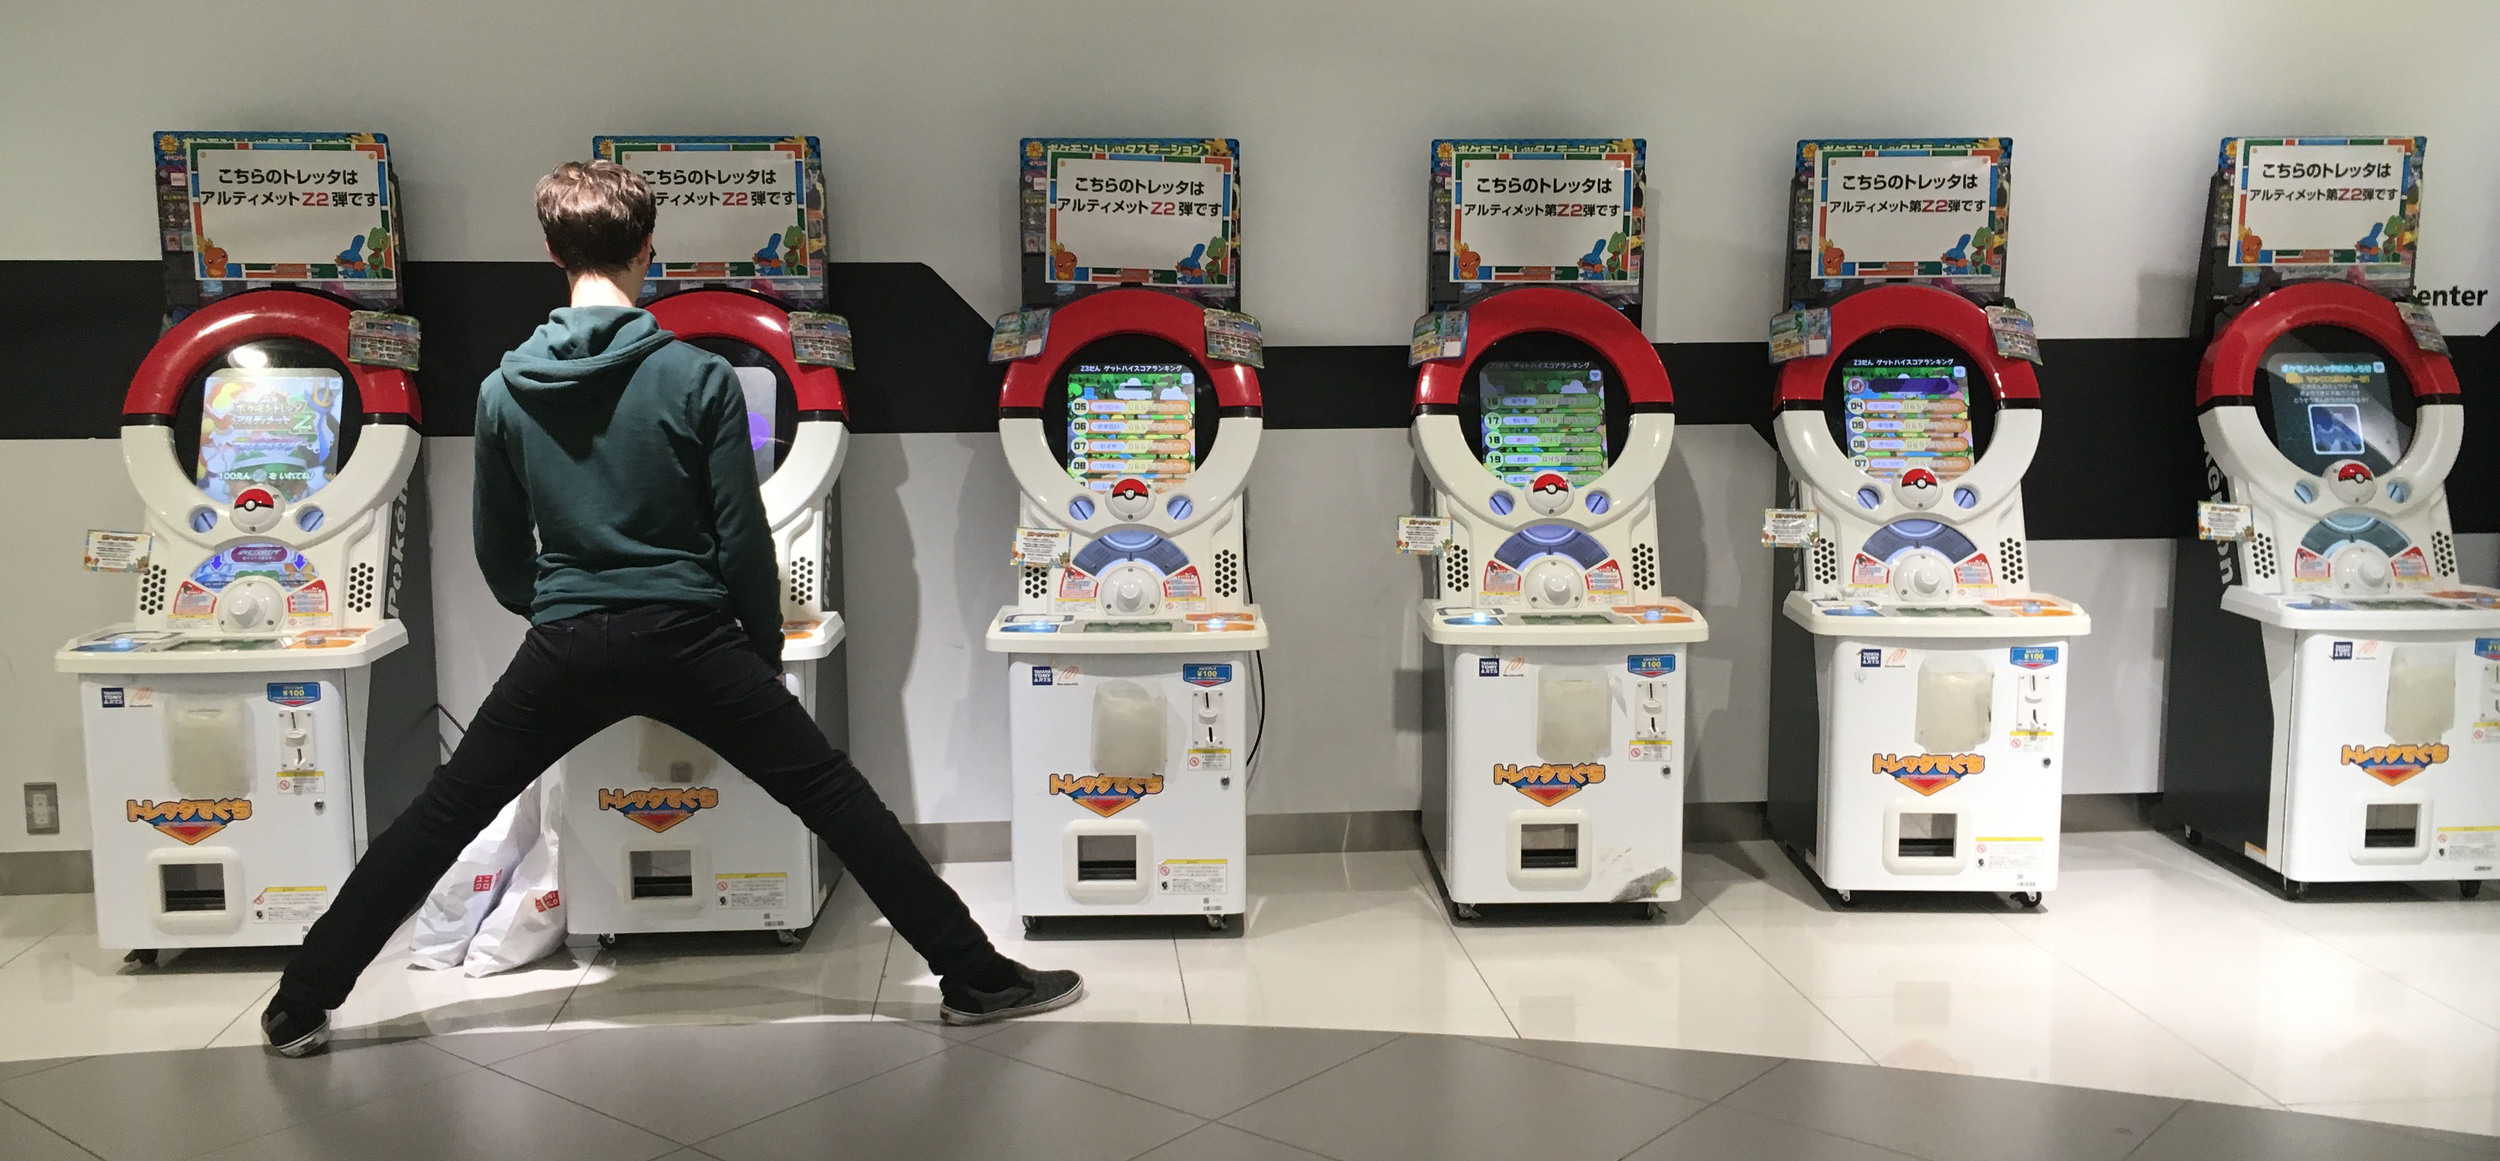 Pokémon Conter Osaka round 2. Michael trying out all the games in Japanese!